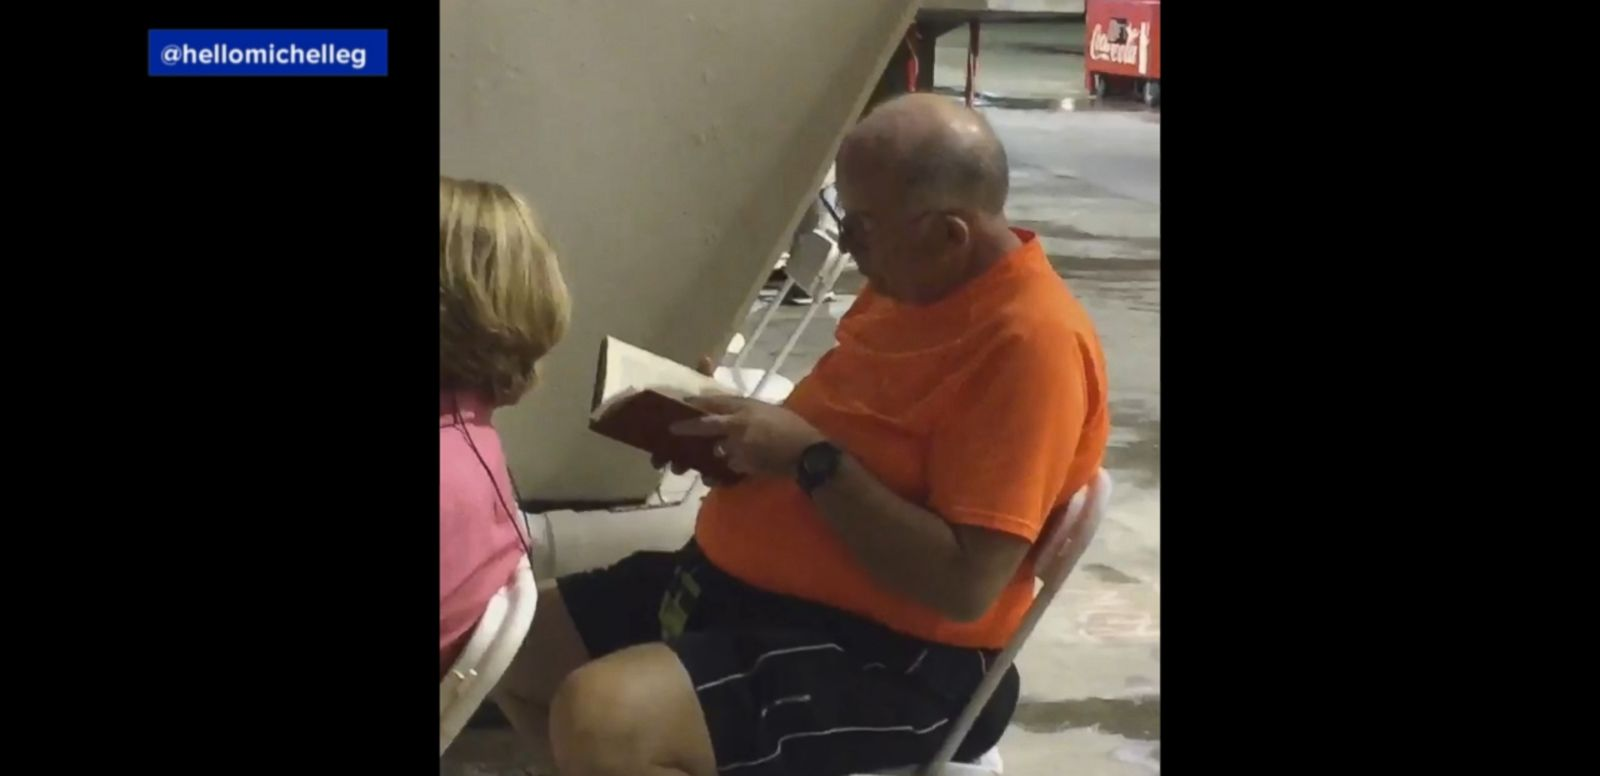 VIDEO: George Papageorgiou, 66, watched Beyoncé's performance for the first 15 to 20 minutes and then sat down and opened his book.